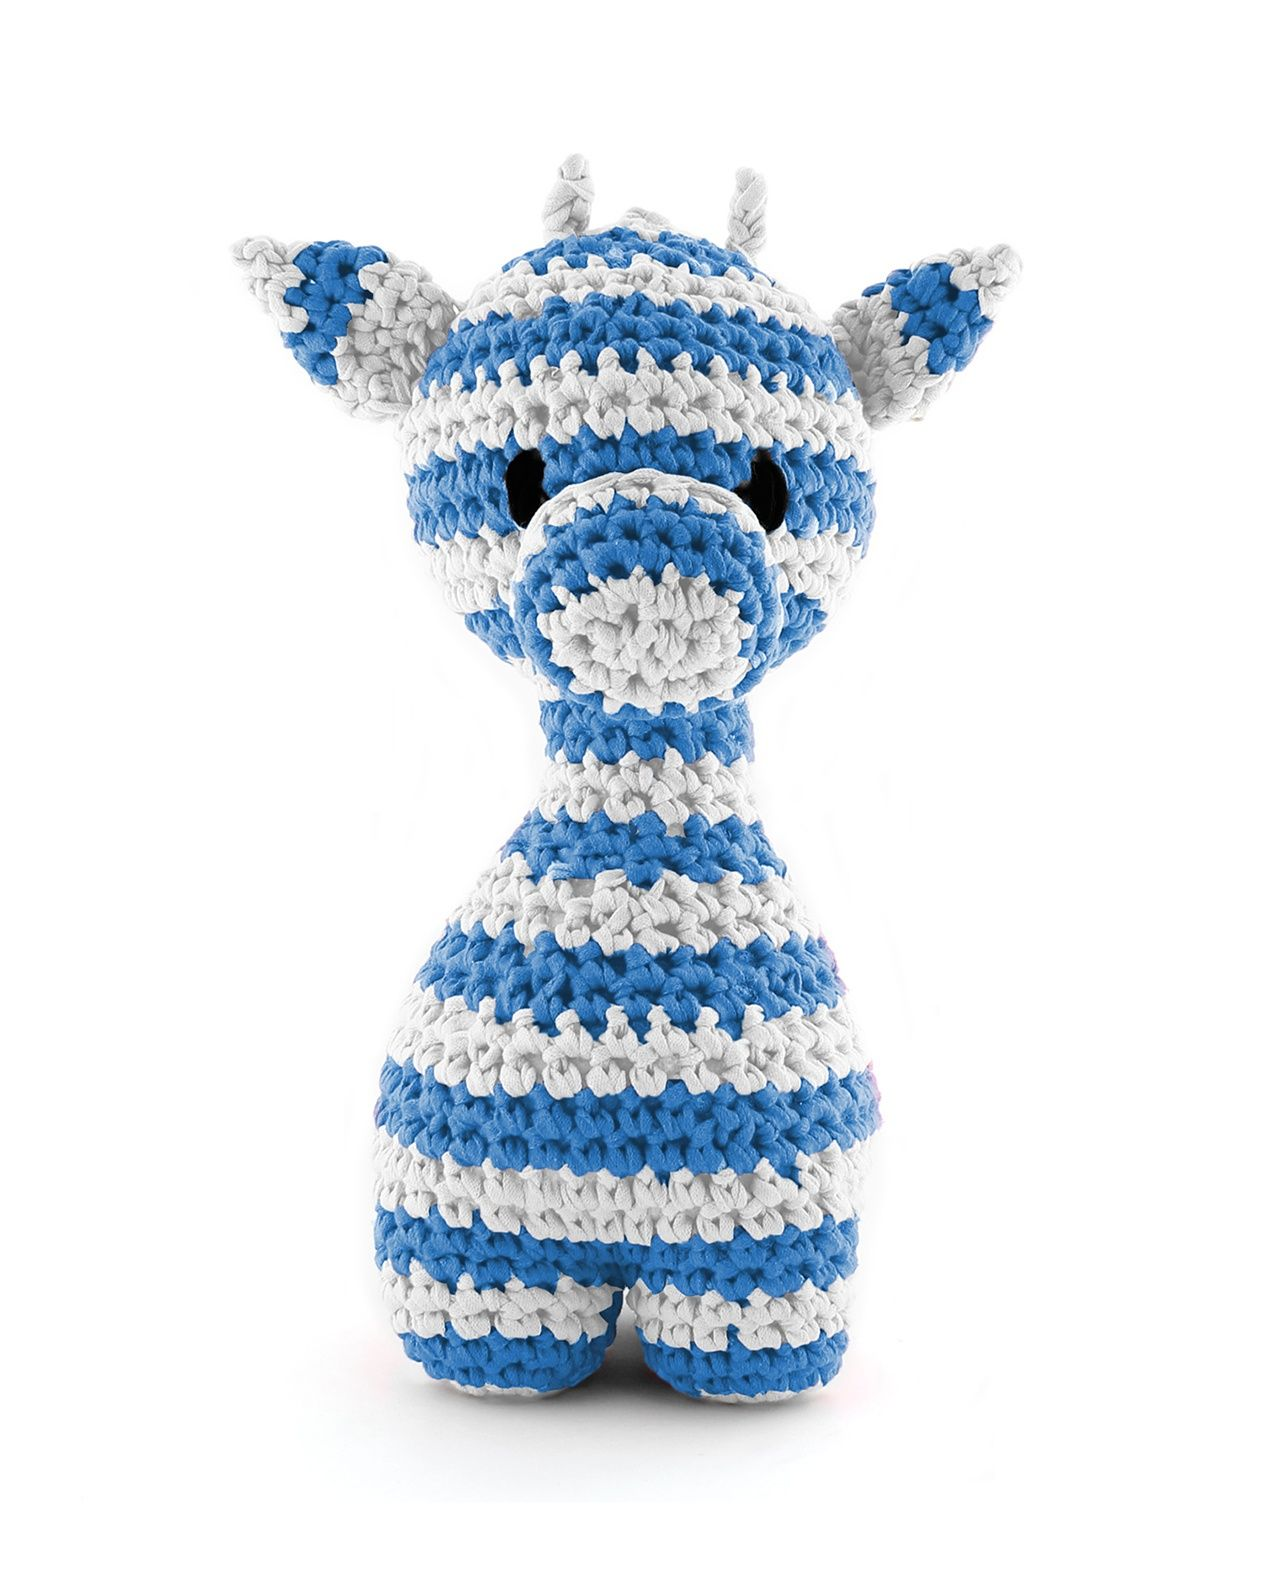 Hoooked Large Striped Ziggy Giraffe blue & grey amigurumi crochet kit & pattern #crochet #gift #cute #animal #craft